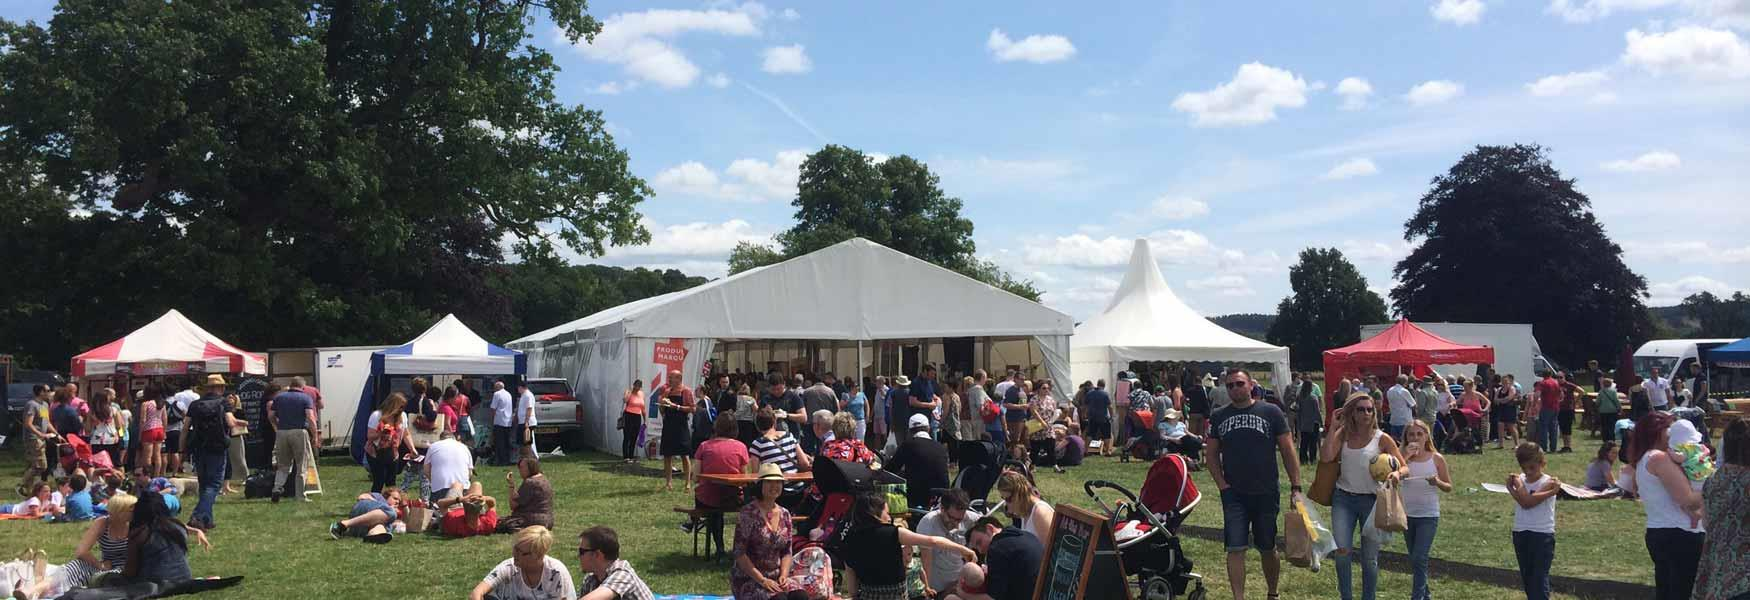 Spend the day at fabulous food festivals